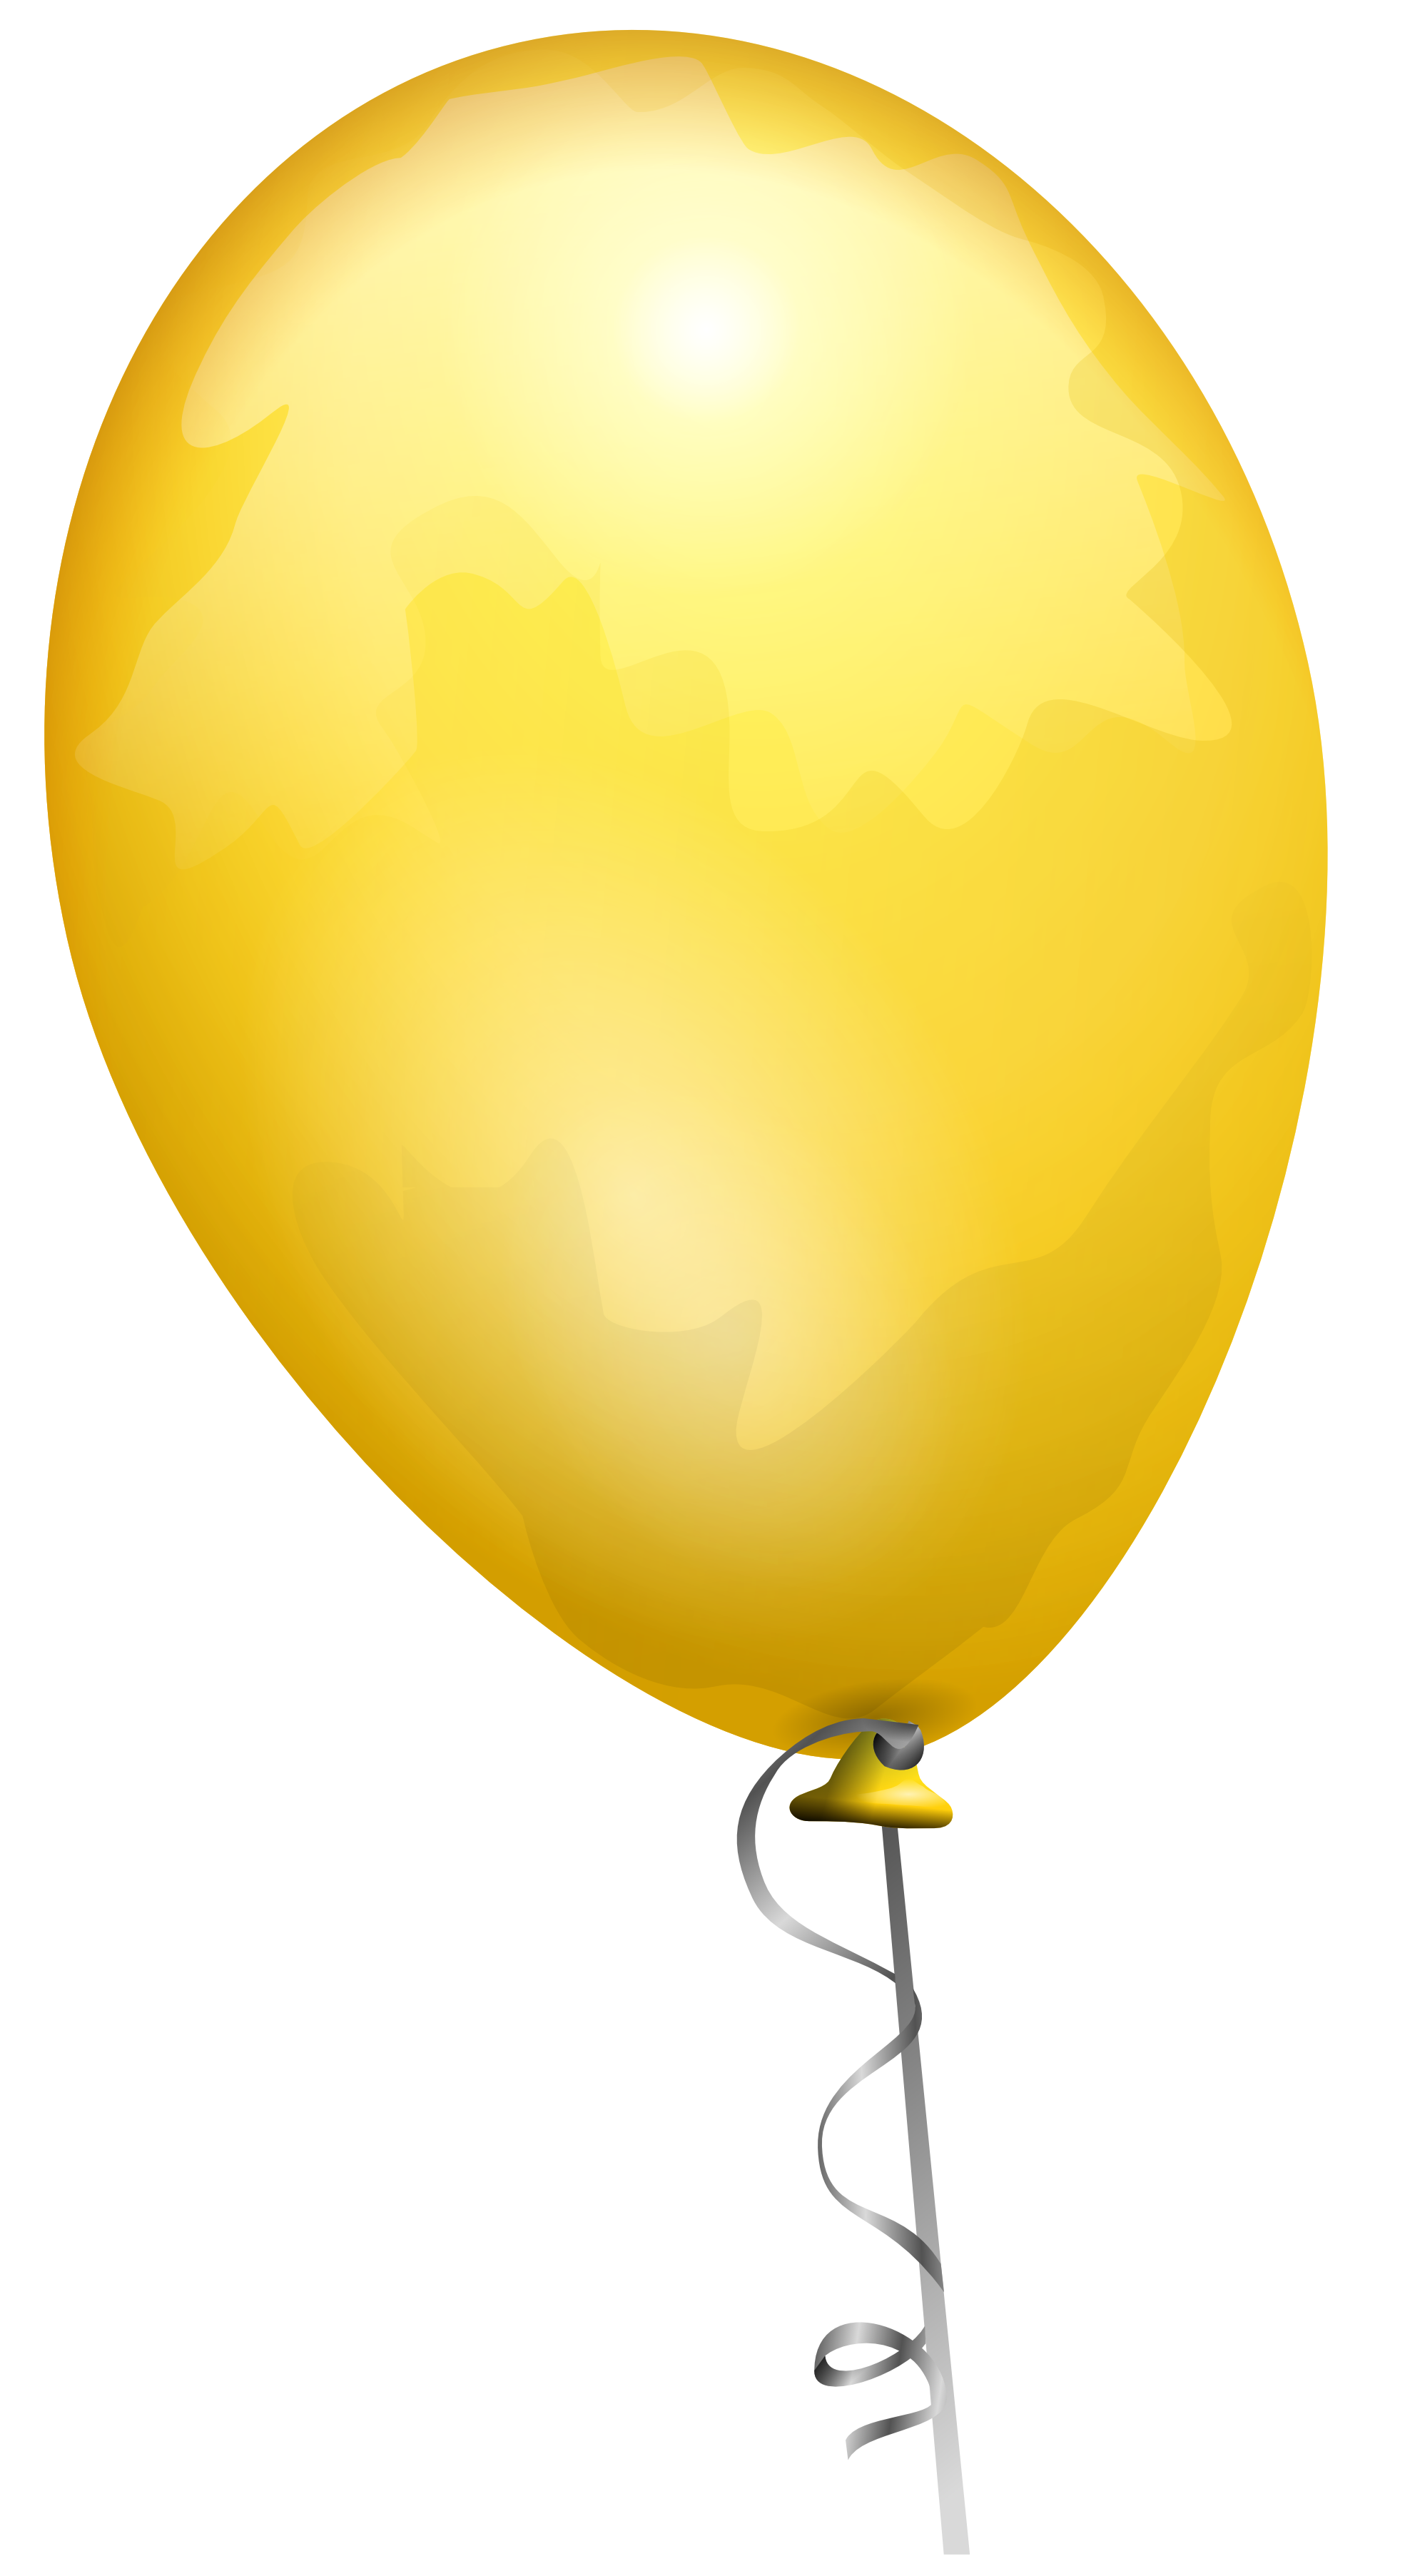 Gold Balloon Png image #28081